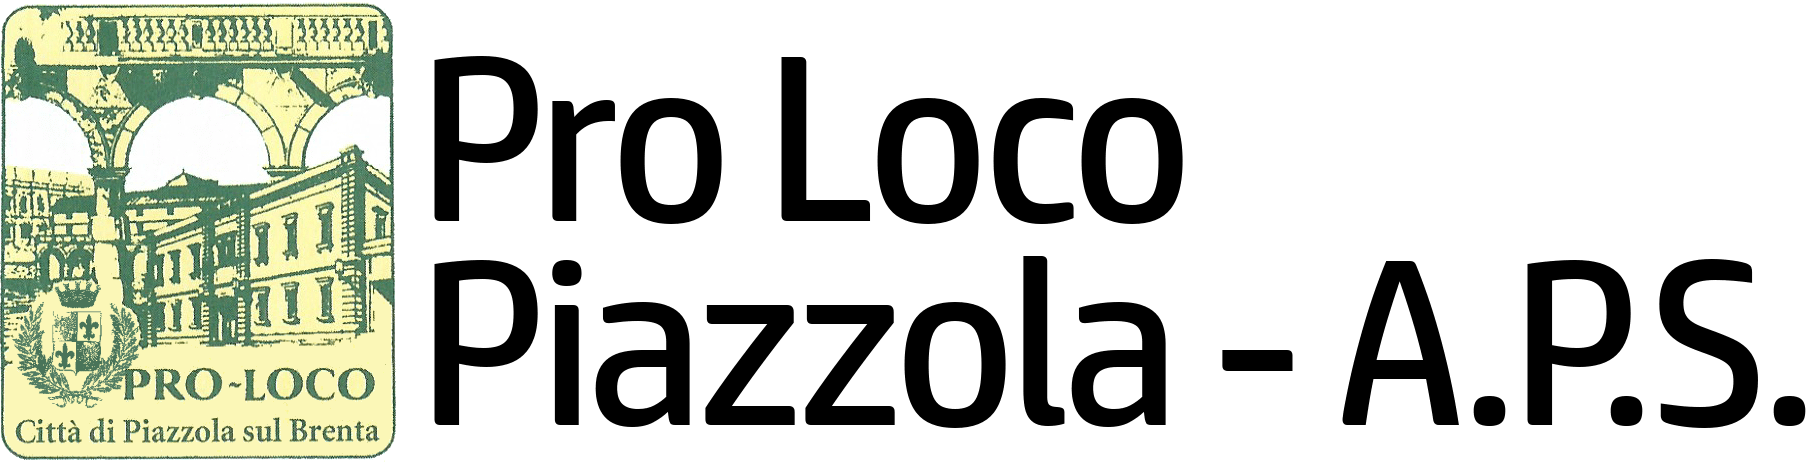 Pro Loco Piazzola A.P.S.